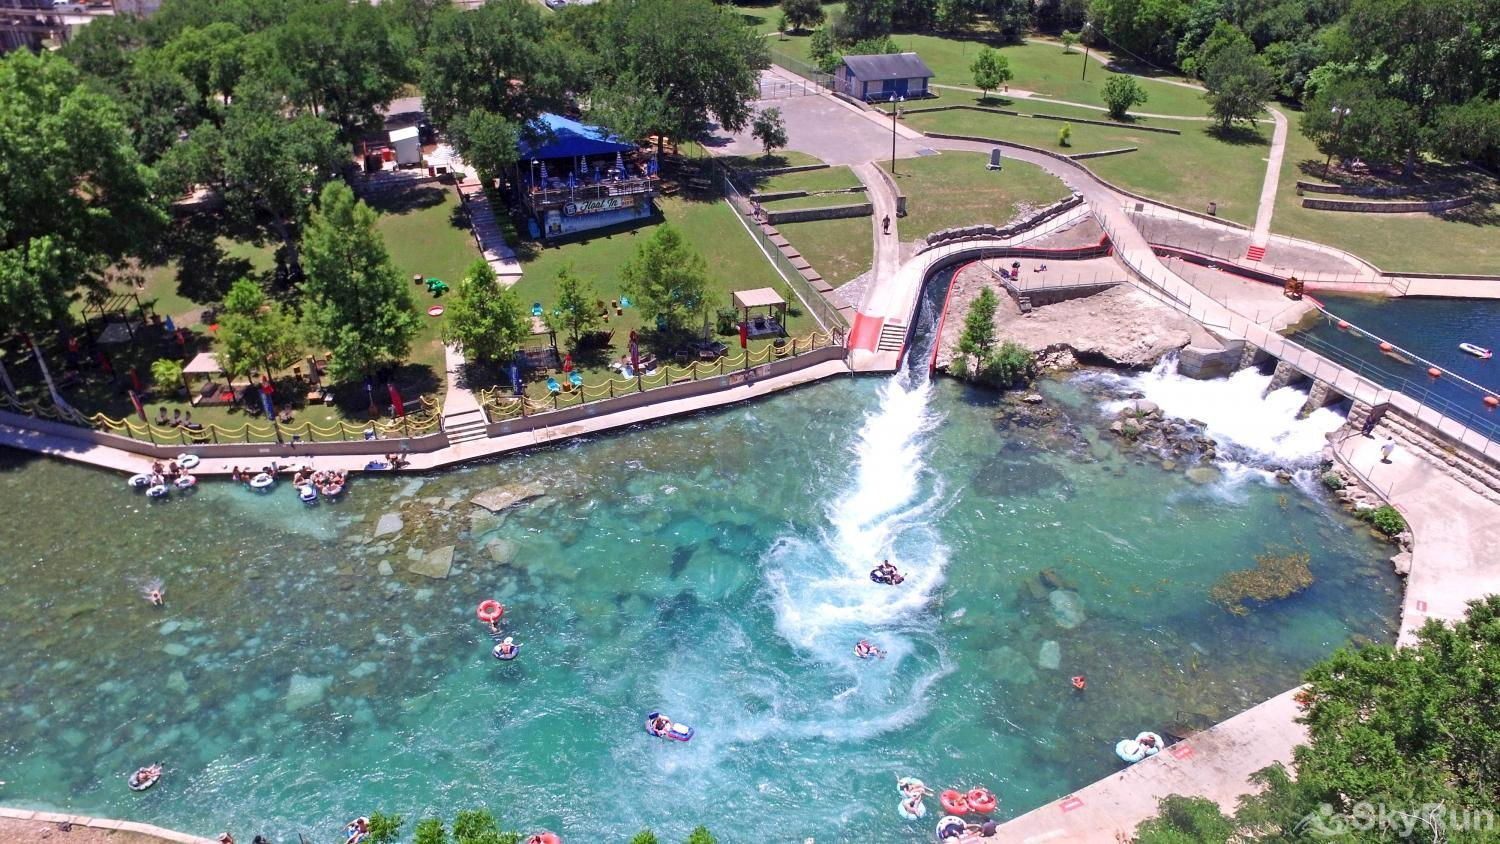 SERENITY SHORES Comal River Tube Chute, 6 miles away